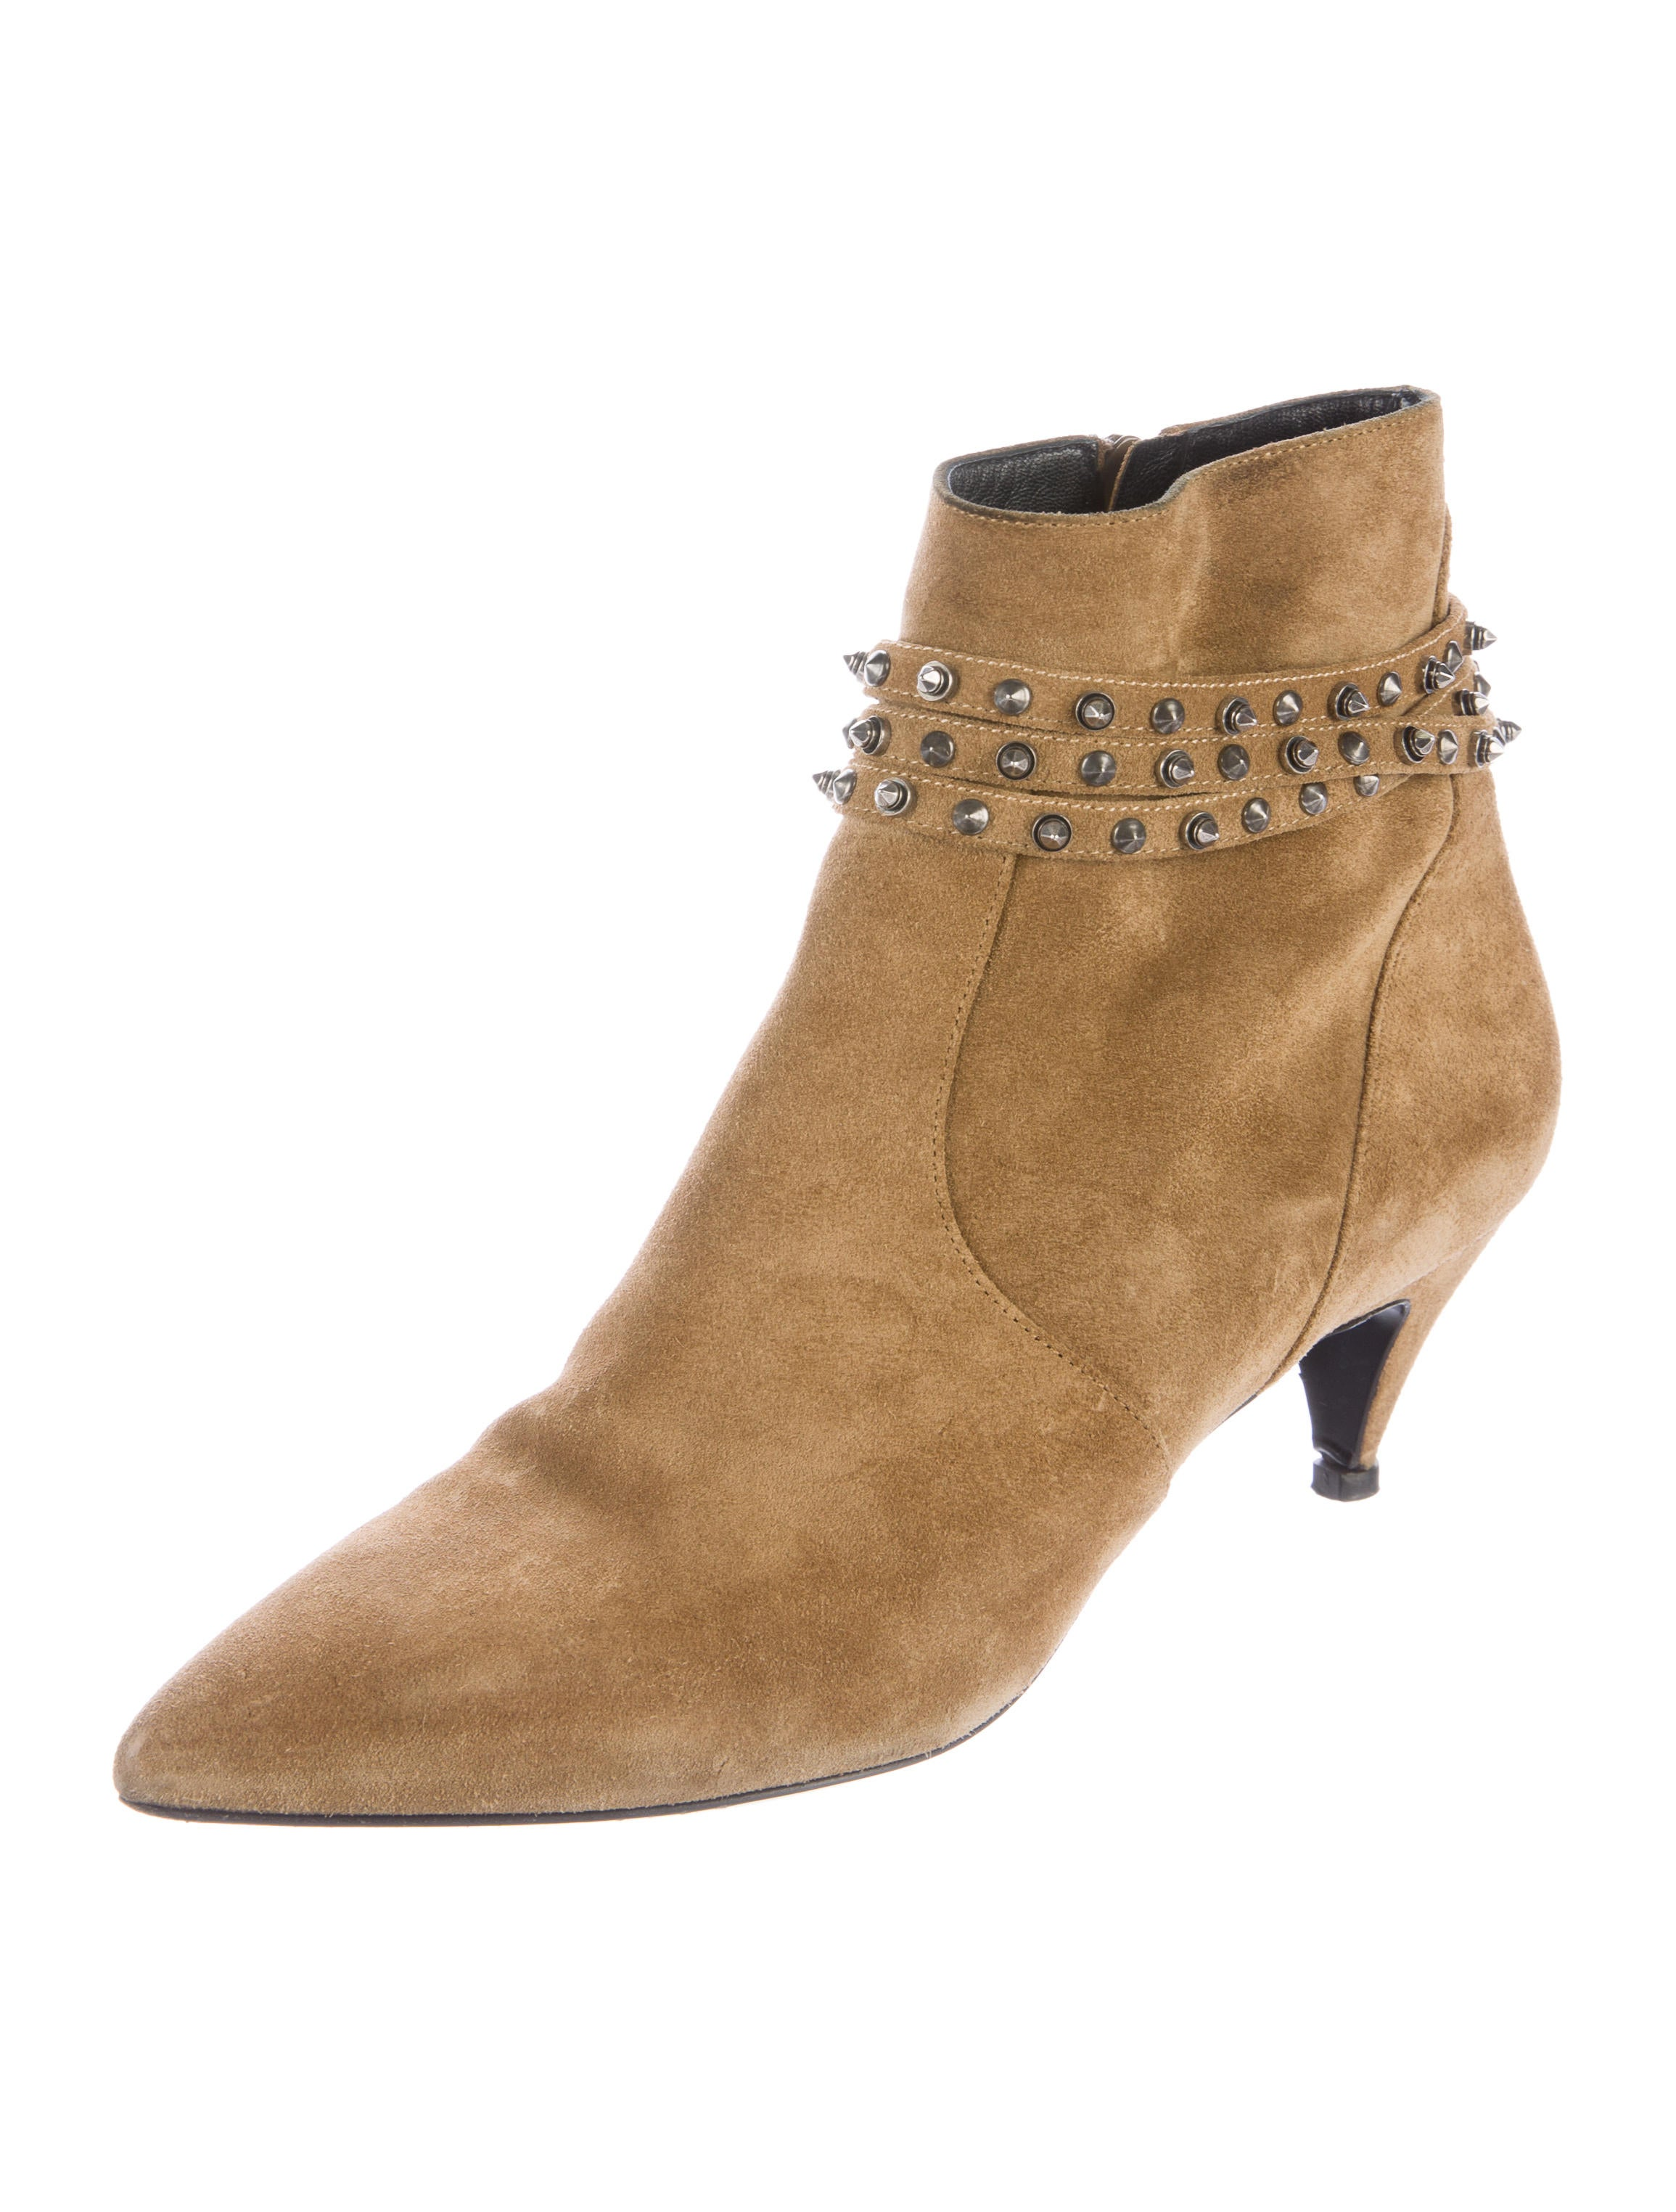 laurent studded suede ankle boots shoes snt34184